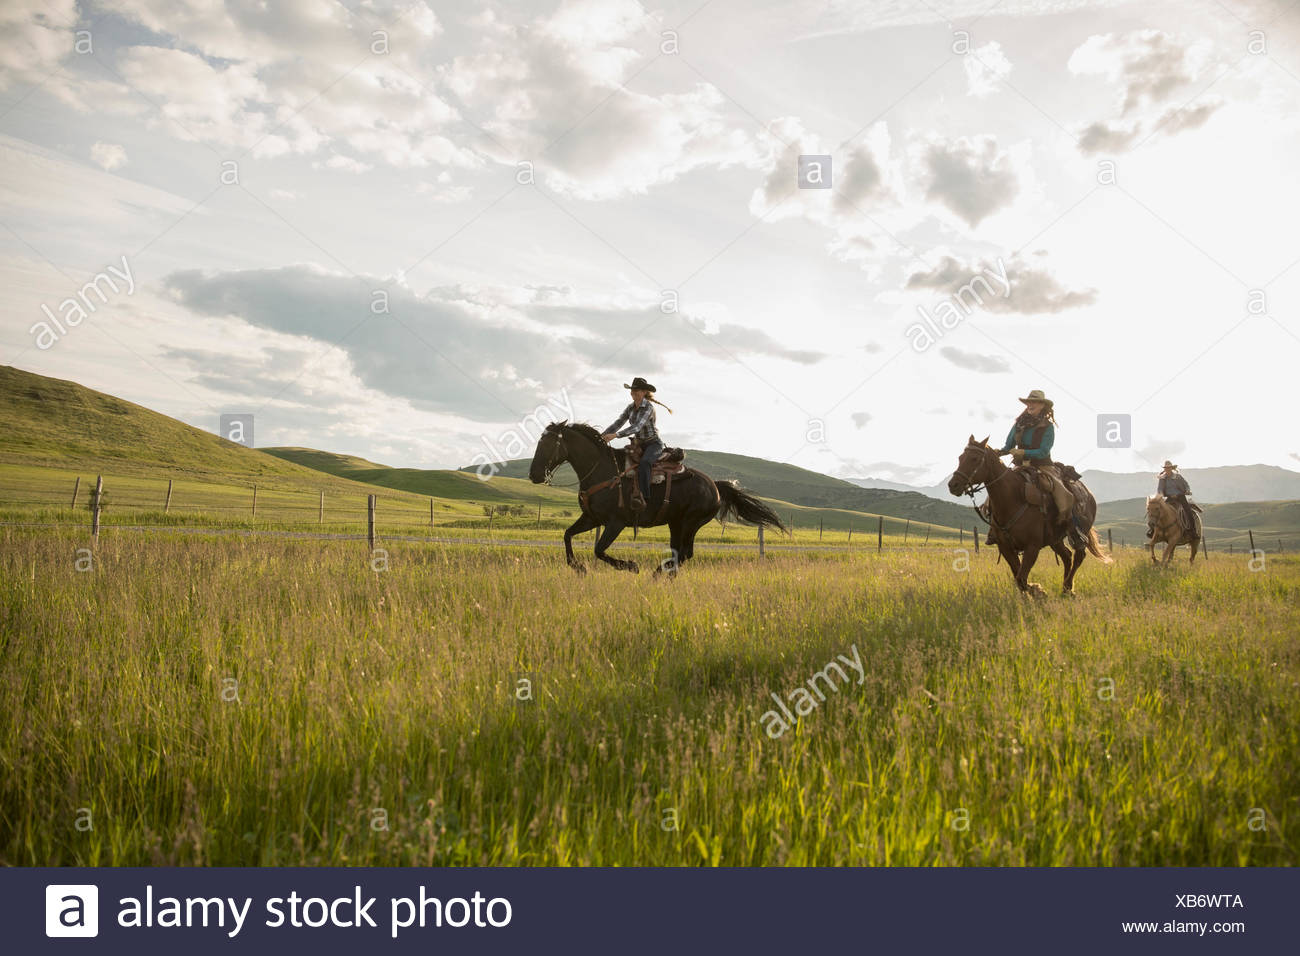 Female ranchers galloping horseback in remote sunny field - Stock Image